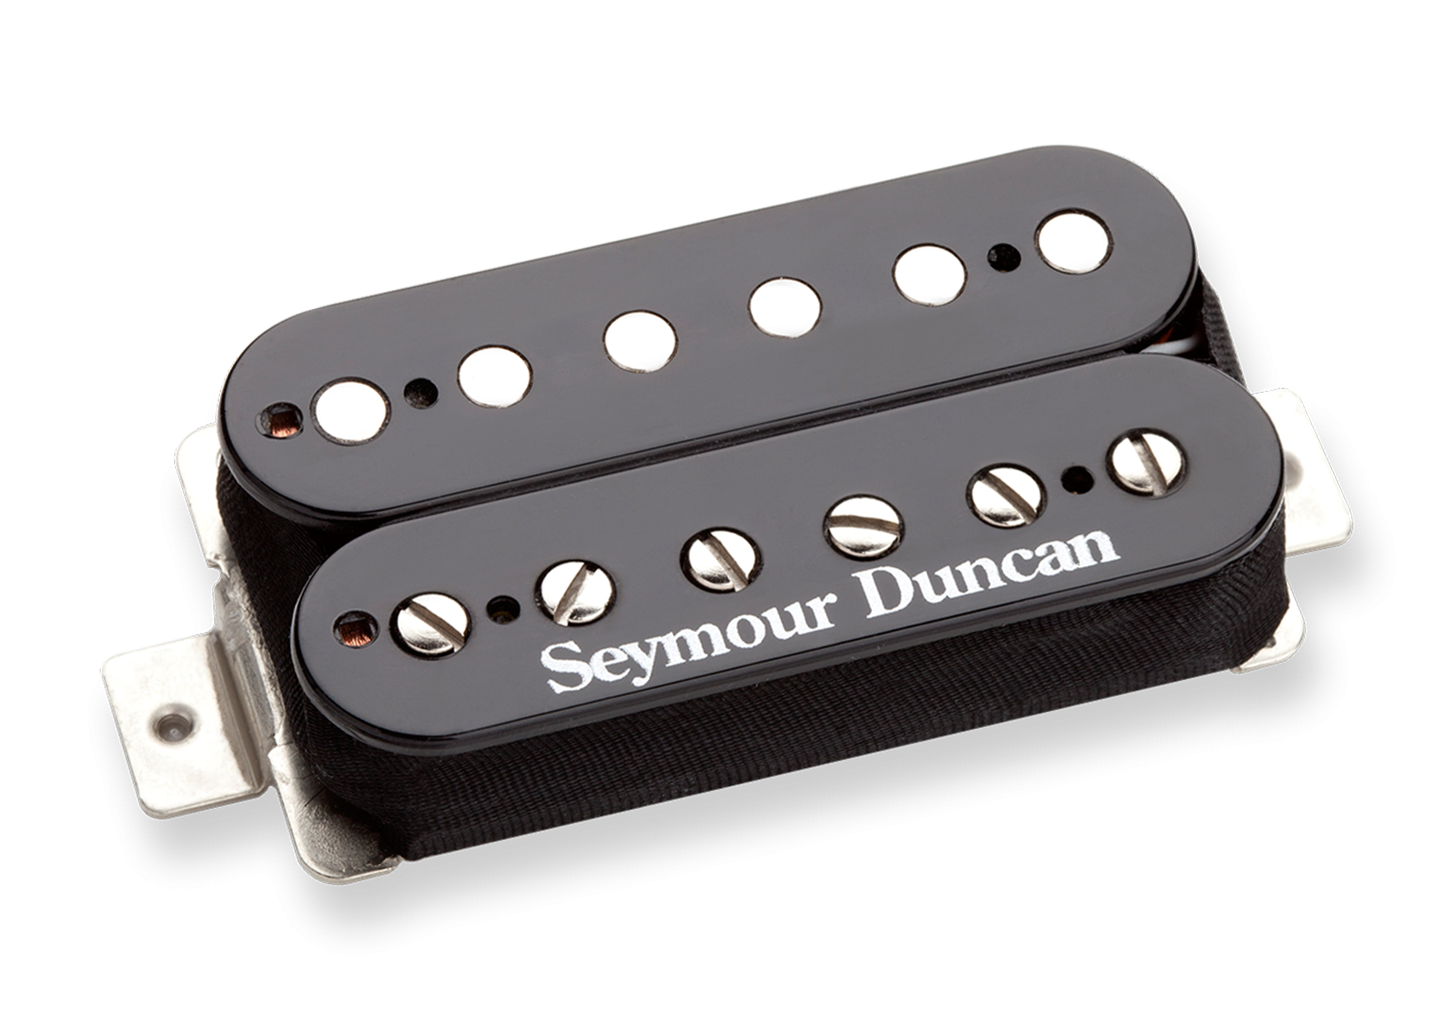 Seymour Duncan Pearly Gates Humbucker - SH-PG1B Bridge Black